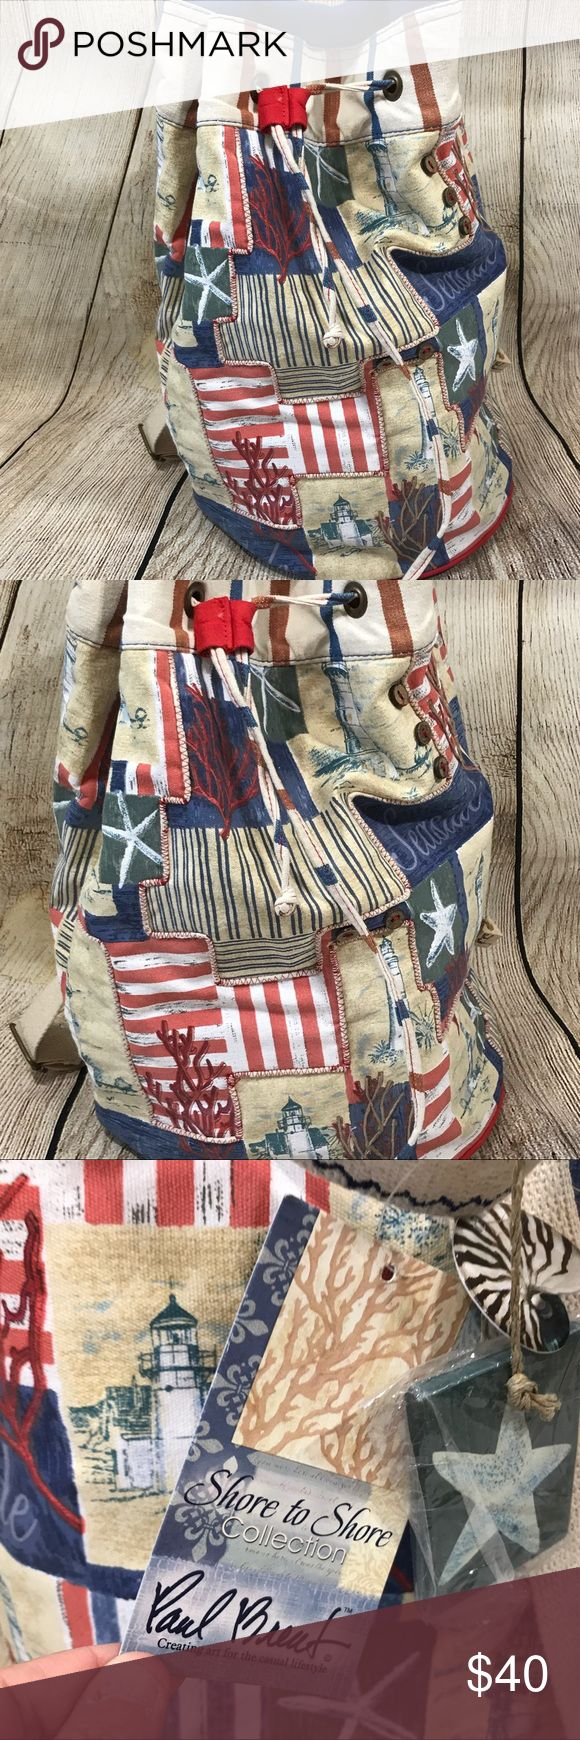 Paul Brent Shore to Shore Collection Nautical Bag Paul Brent Shore to Shore Collection Nautical Lighthouse Single Strap Backpack  Adjustable Strap. Zippered pouch inside Great for Beach, Back to School or Backpacking.  New With Tags Paul Brent Bags Backpacks